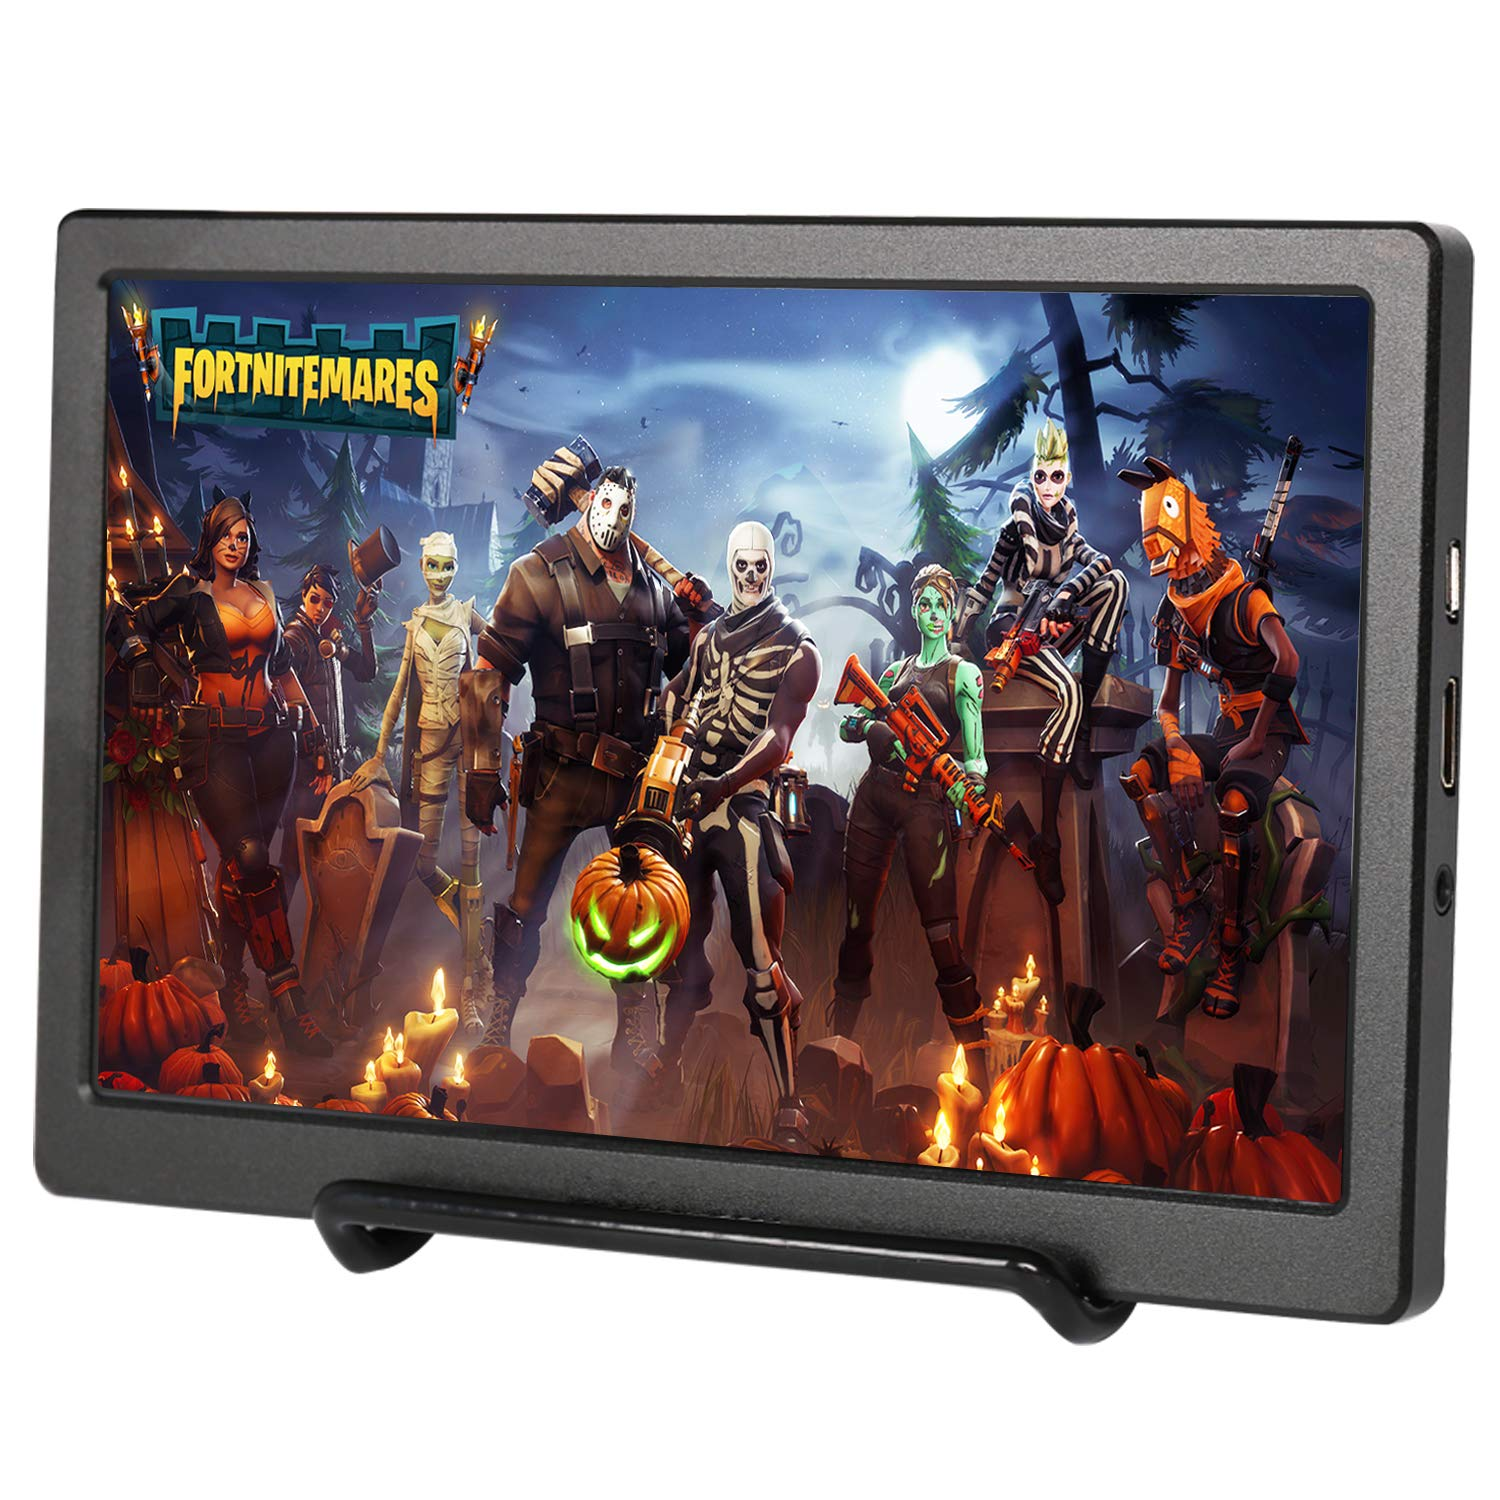 Portable Screen HDMI Monitor 1024×600 IPS Portable Display Monitor Built in Speaker for Raspberry Pi Computer Laptop PS3 PS4 Xbox one Ns xbox360 Black by UPERFECT (Image #1)